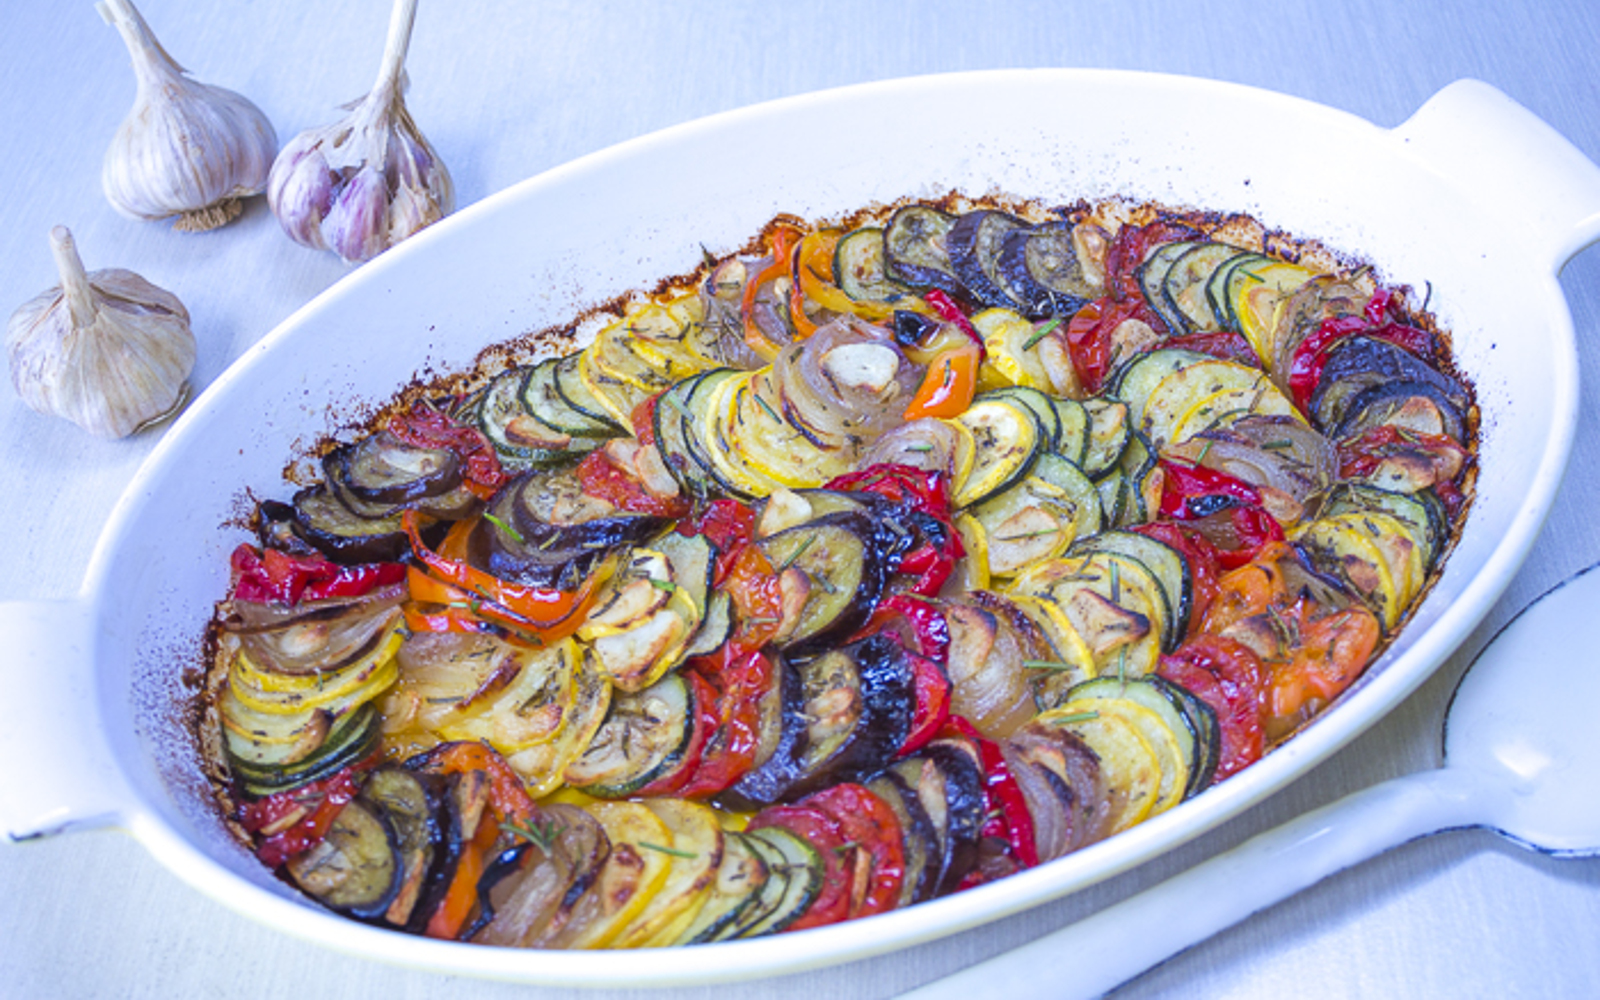 Tian of Vegetables with Garlic and Rosemary